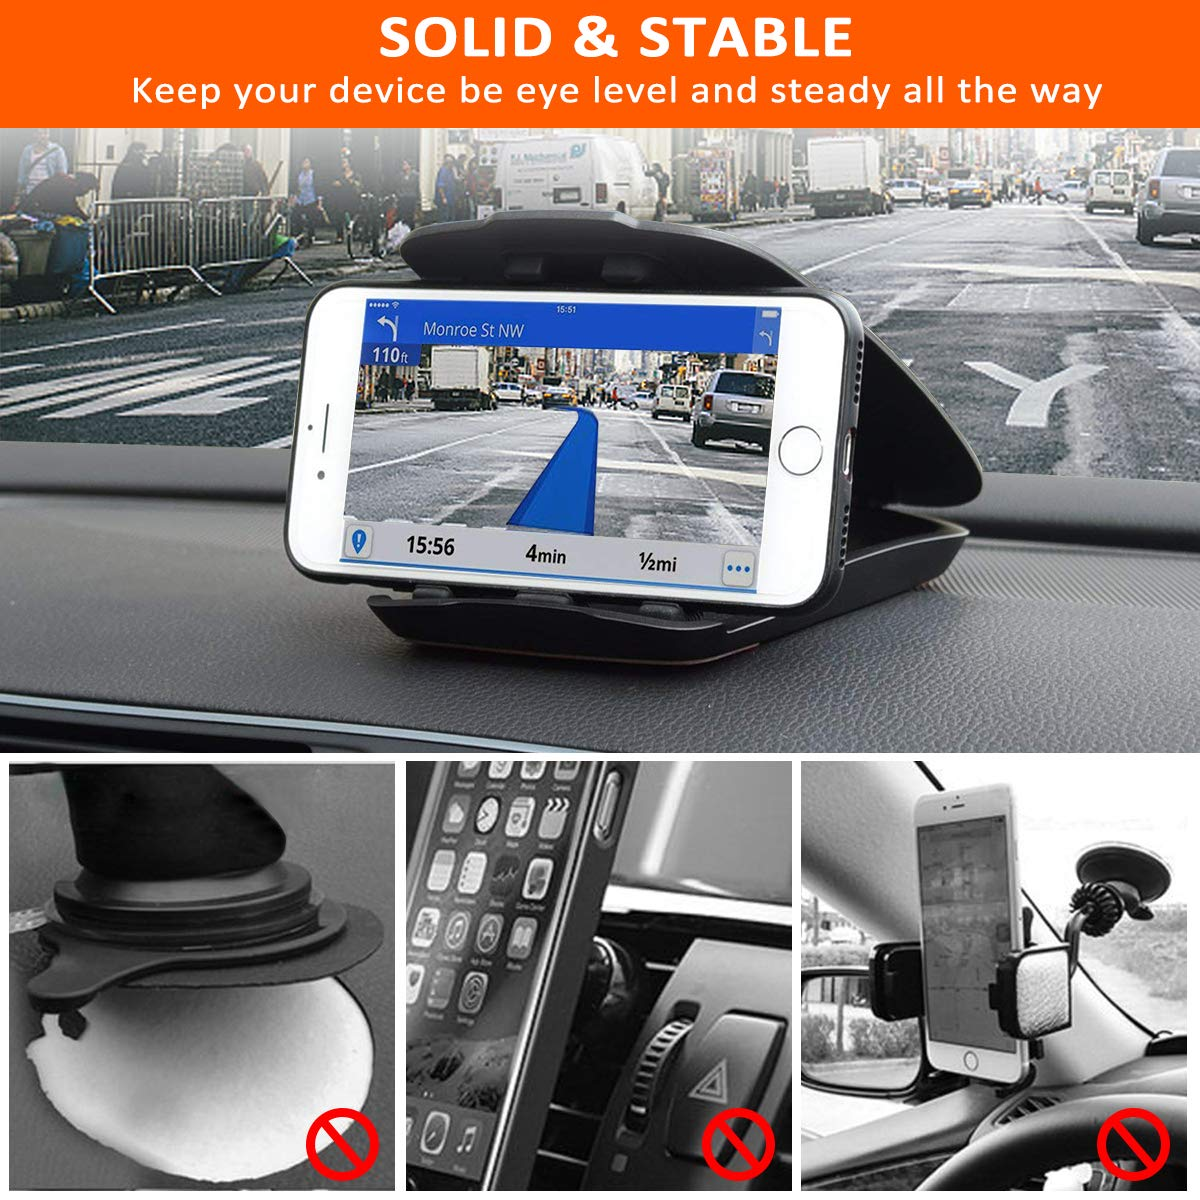 ... Dashboard Cell Phone Holder [Easy Opening & Neat Folding], Compatible with iPhone X/XS Max/XR/8 Plus/7 Plus/6s/6 Plus, Galaxy S10 Plus/S10/S10e, GPS, ...